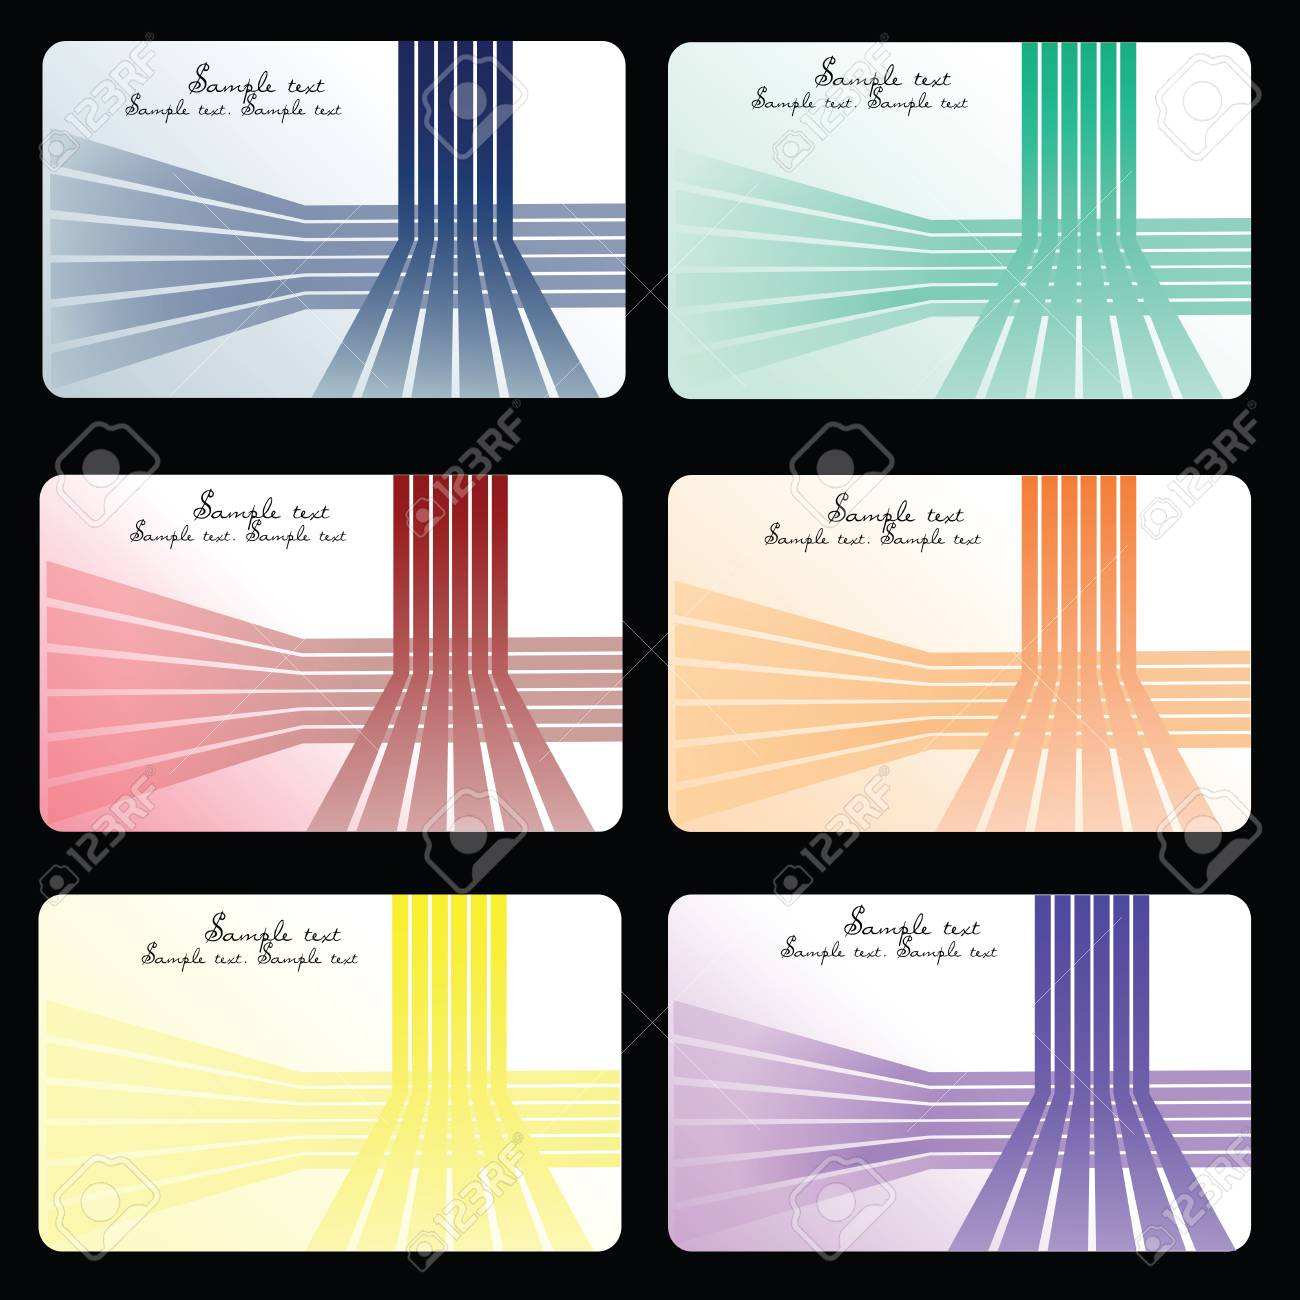 Set of business cards Stock Photo - 7032341